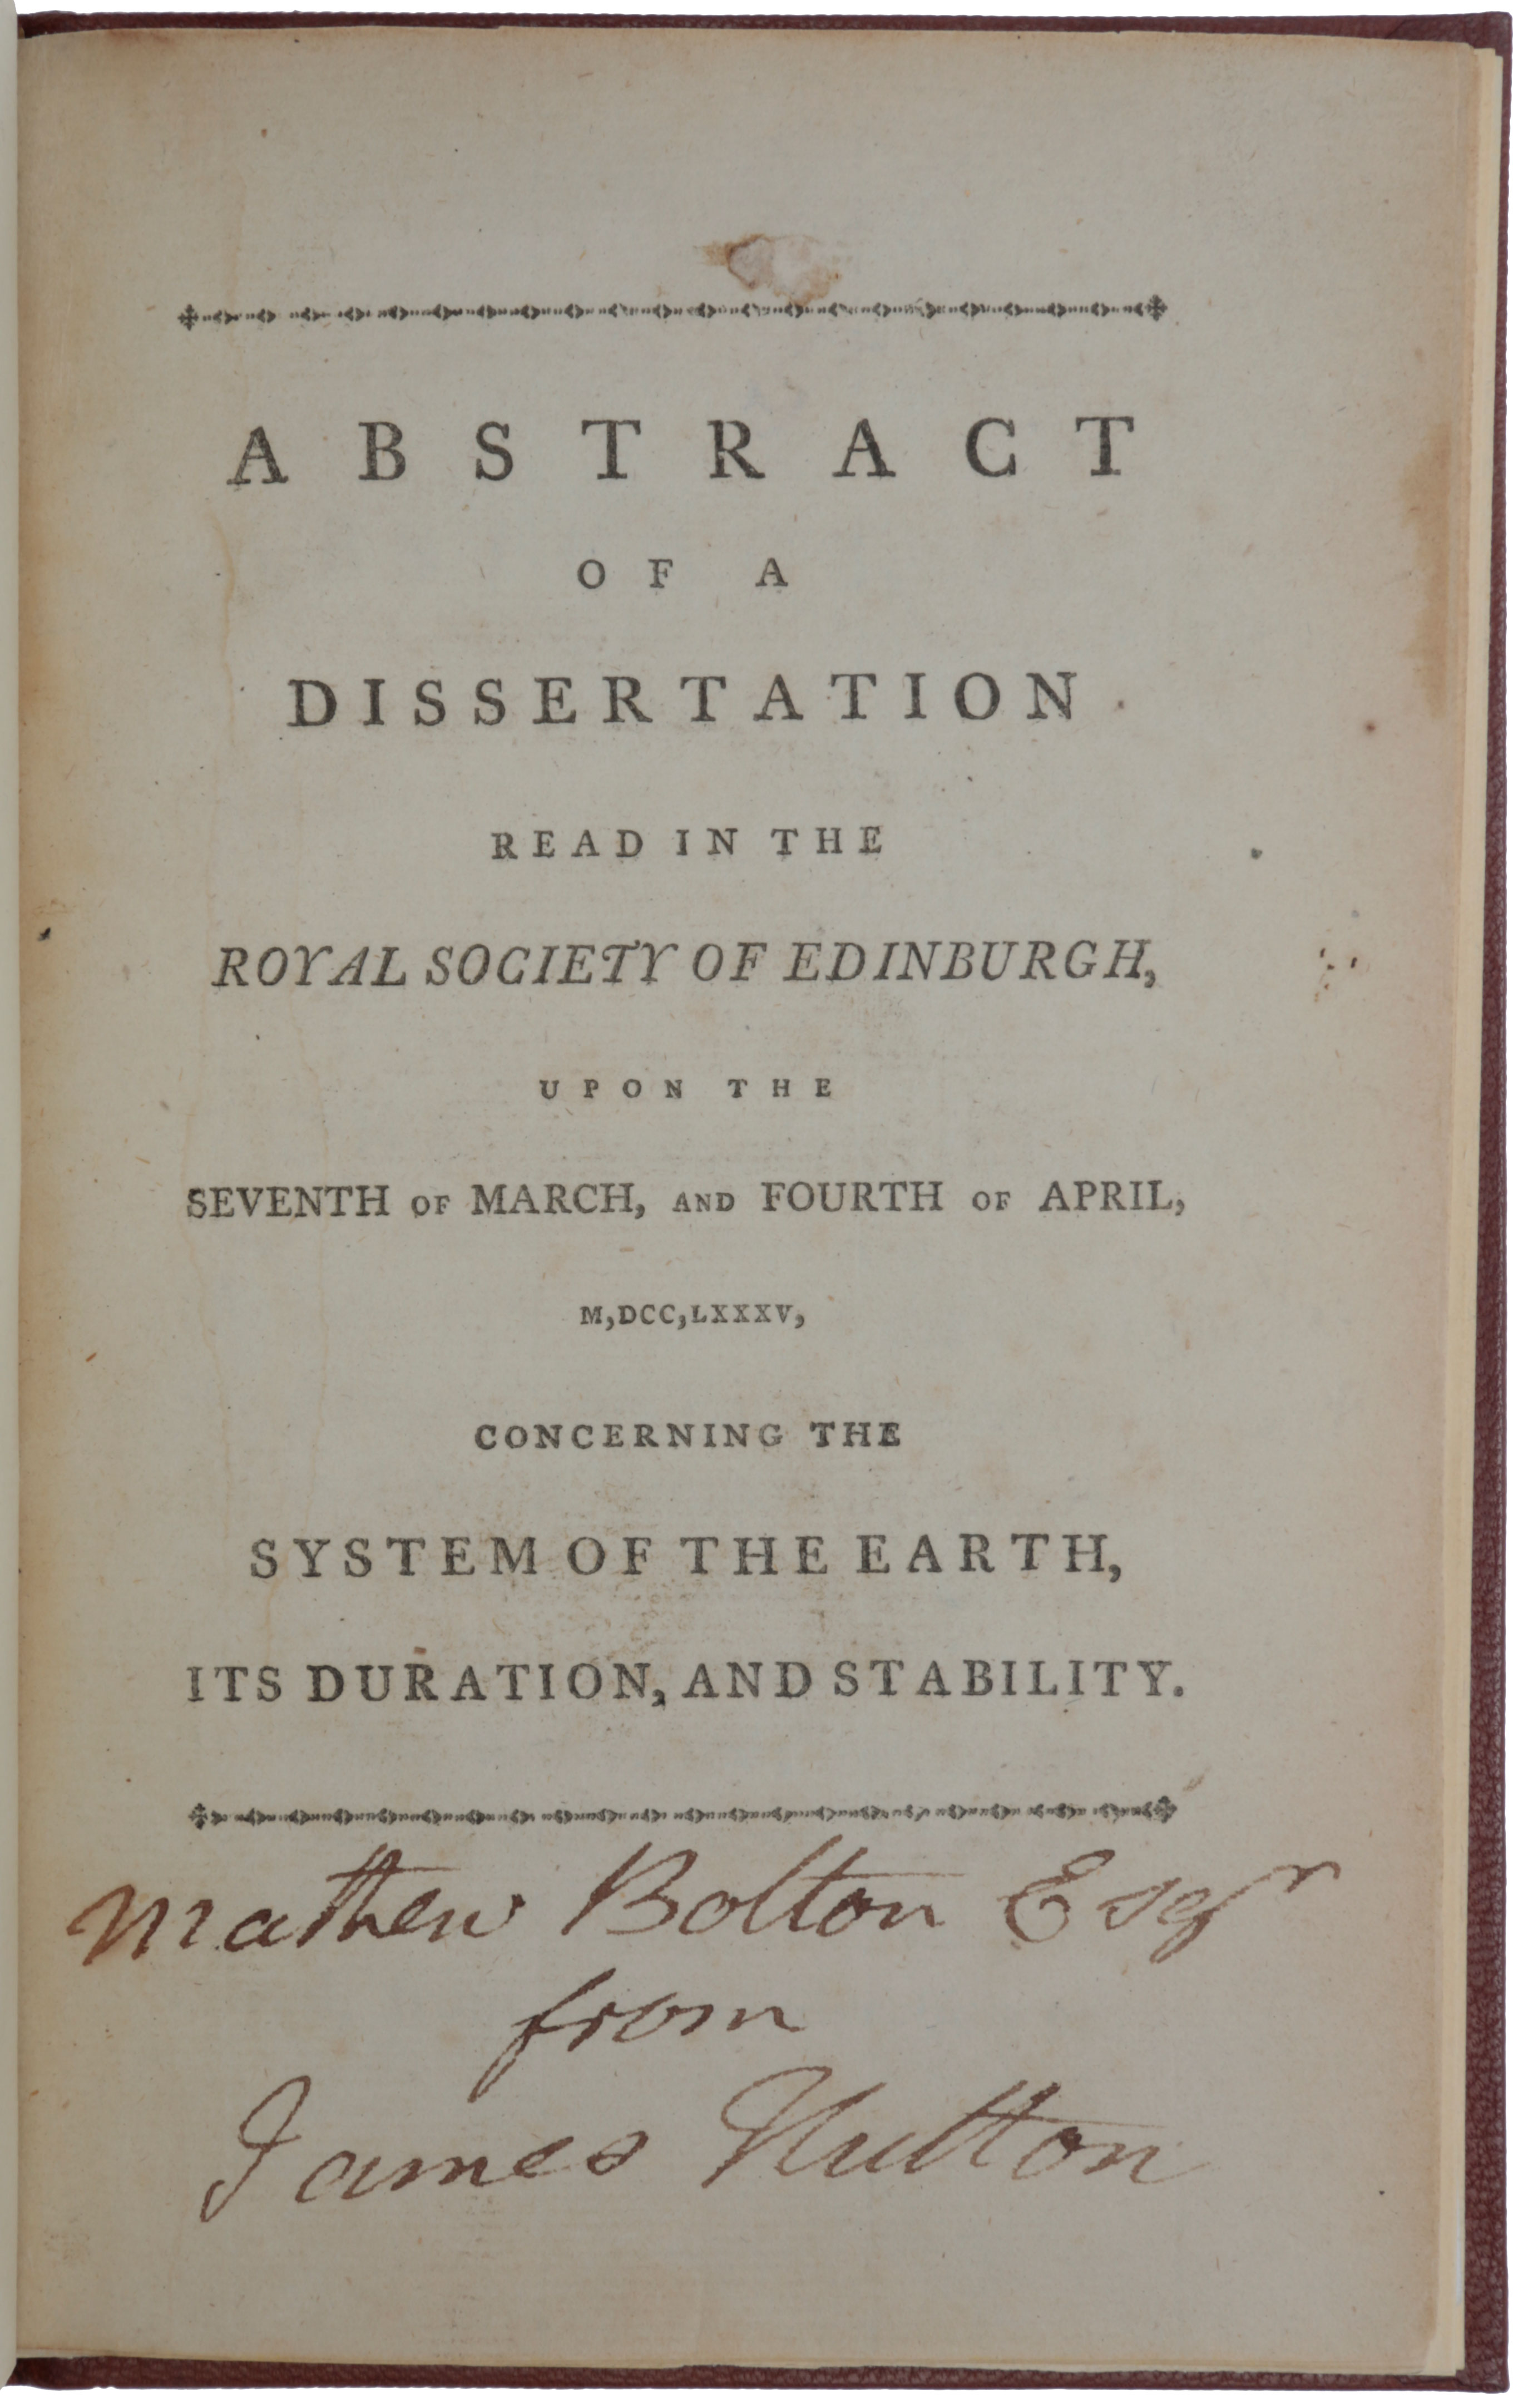 Abstract of a Dissertation Read in the Royal Society of Edinburgh, upon the Seventh of March, and Fourth of April, M,DCC,LXXXV, concerning the System of the Earth, its Duration, and Stability. James HUTTON.